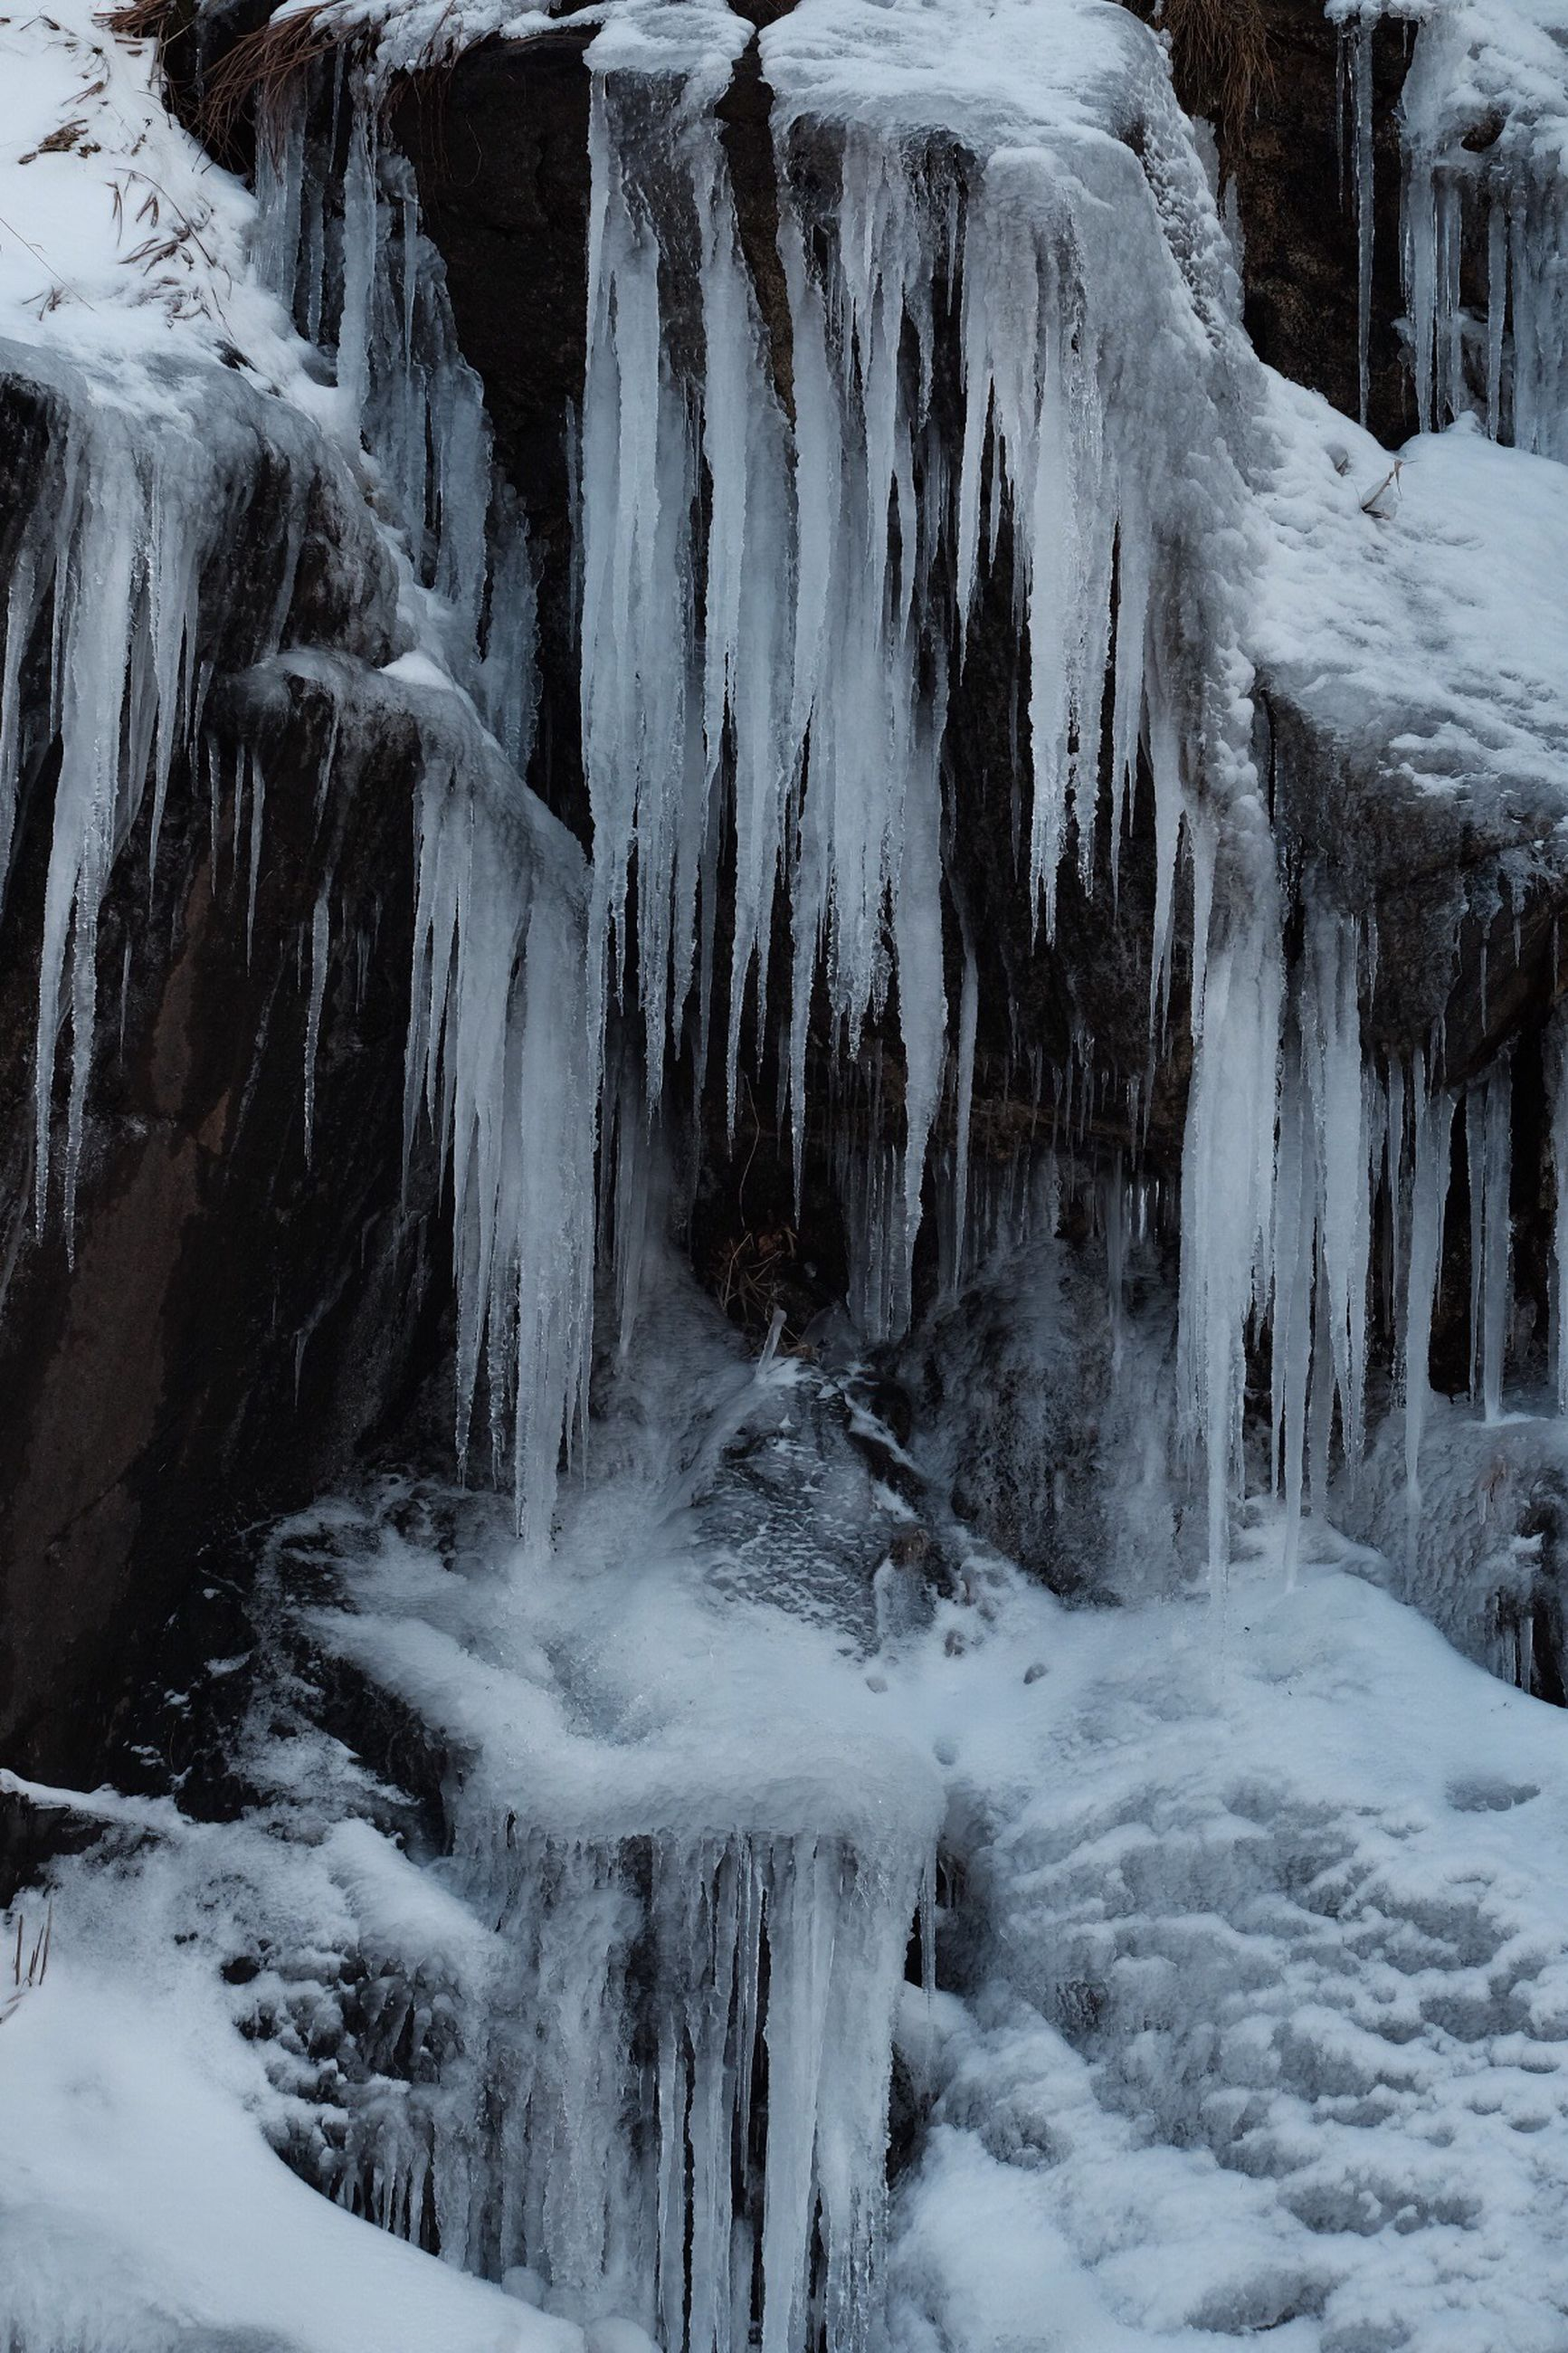 nature, beauty in nature, winter, snow, cold temperature, geology, physical geography, tranquility, scenics, travel destinations, frozen, day, landscape, no people, outdoors, motion, stalactite, waterfall, water